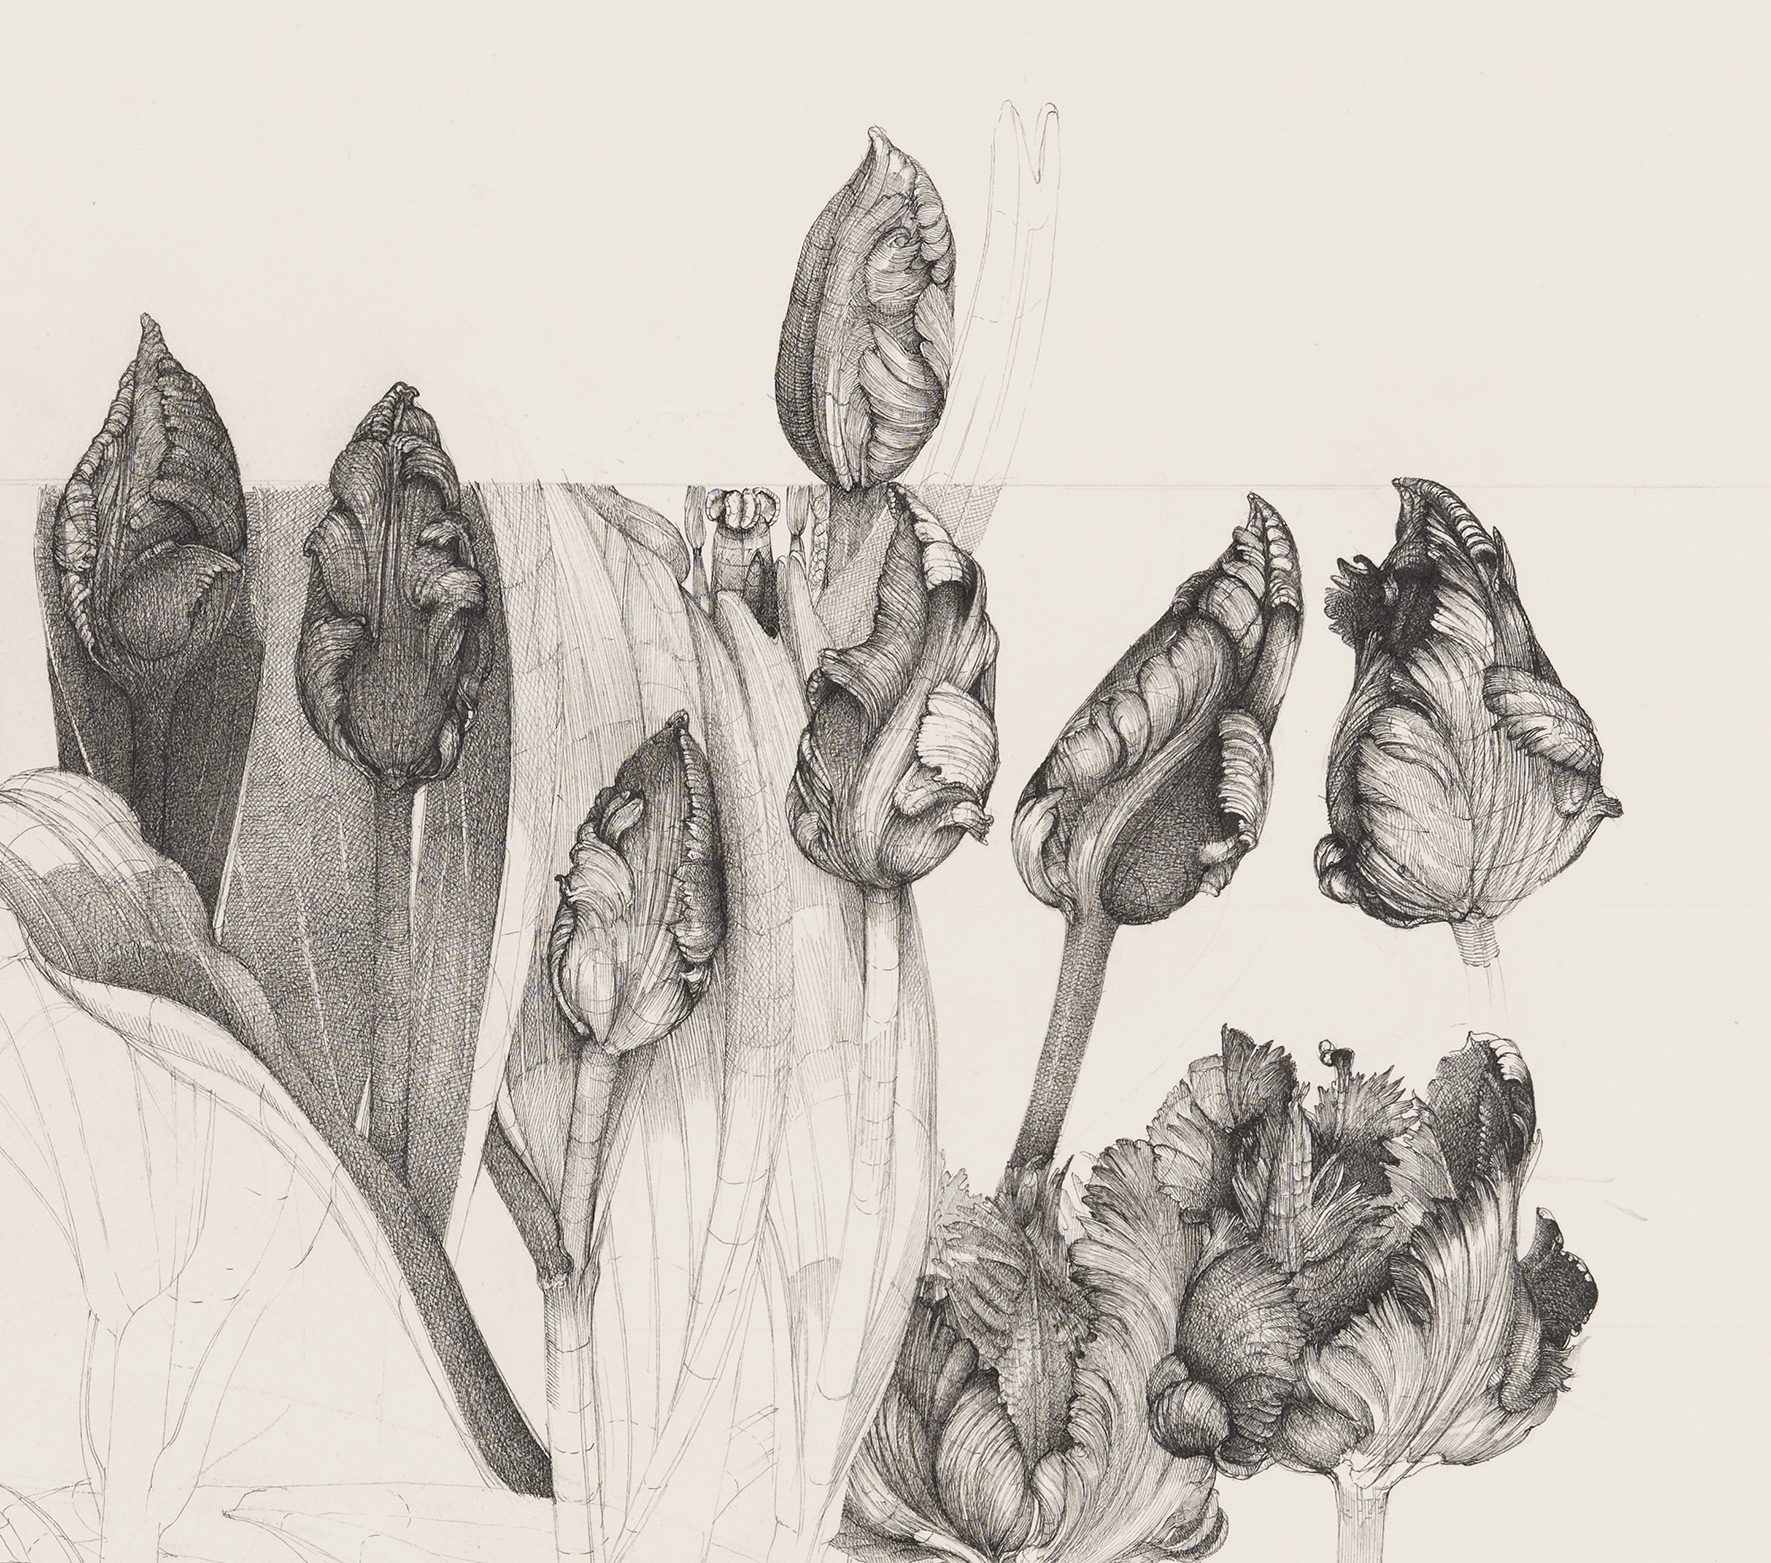 Charmian Johnson, not titled (detail), unknown date, ink and graphite on paper, 27 x 26 in. (67 x 65 cm) by